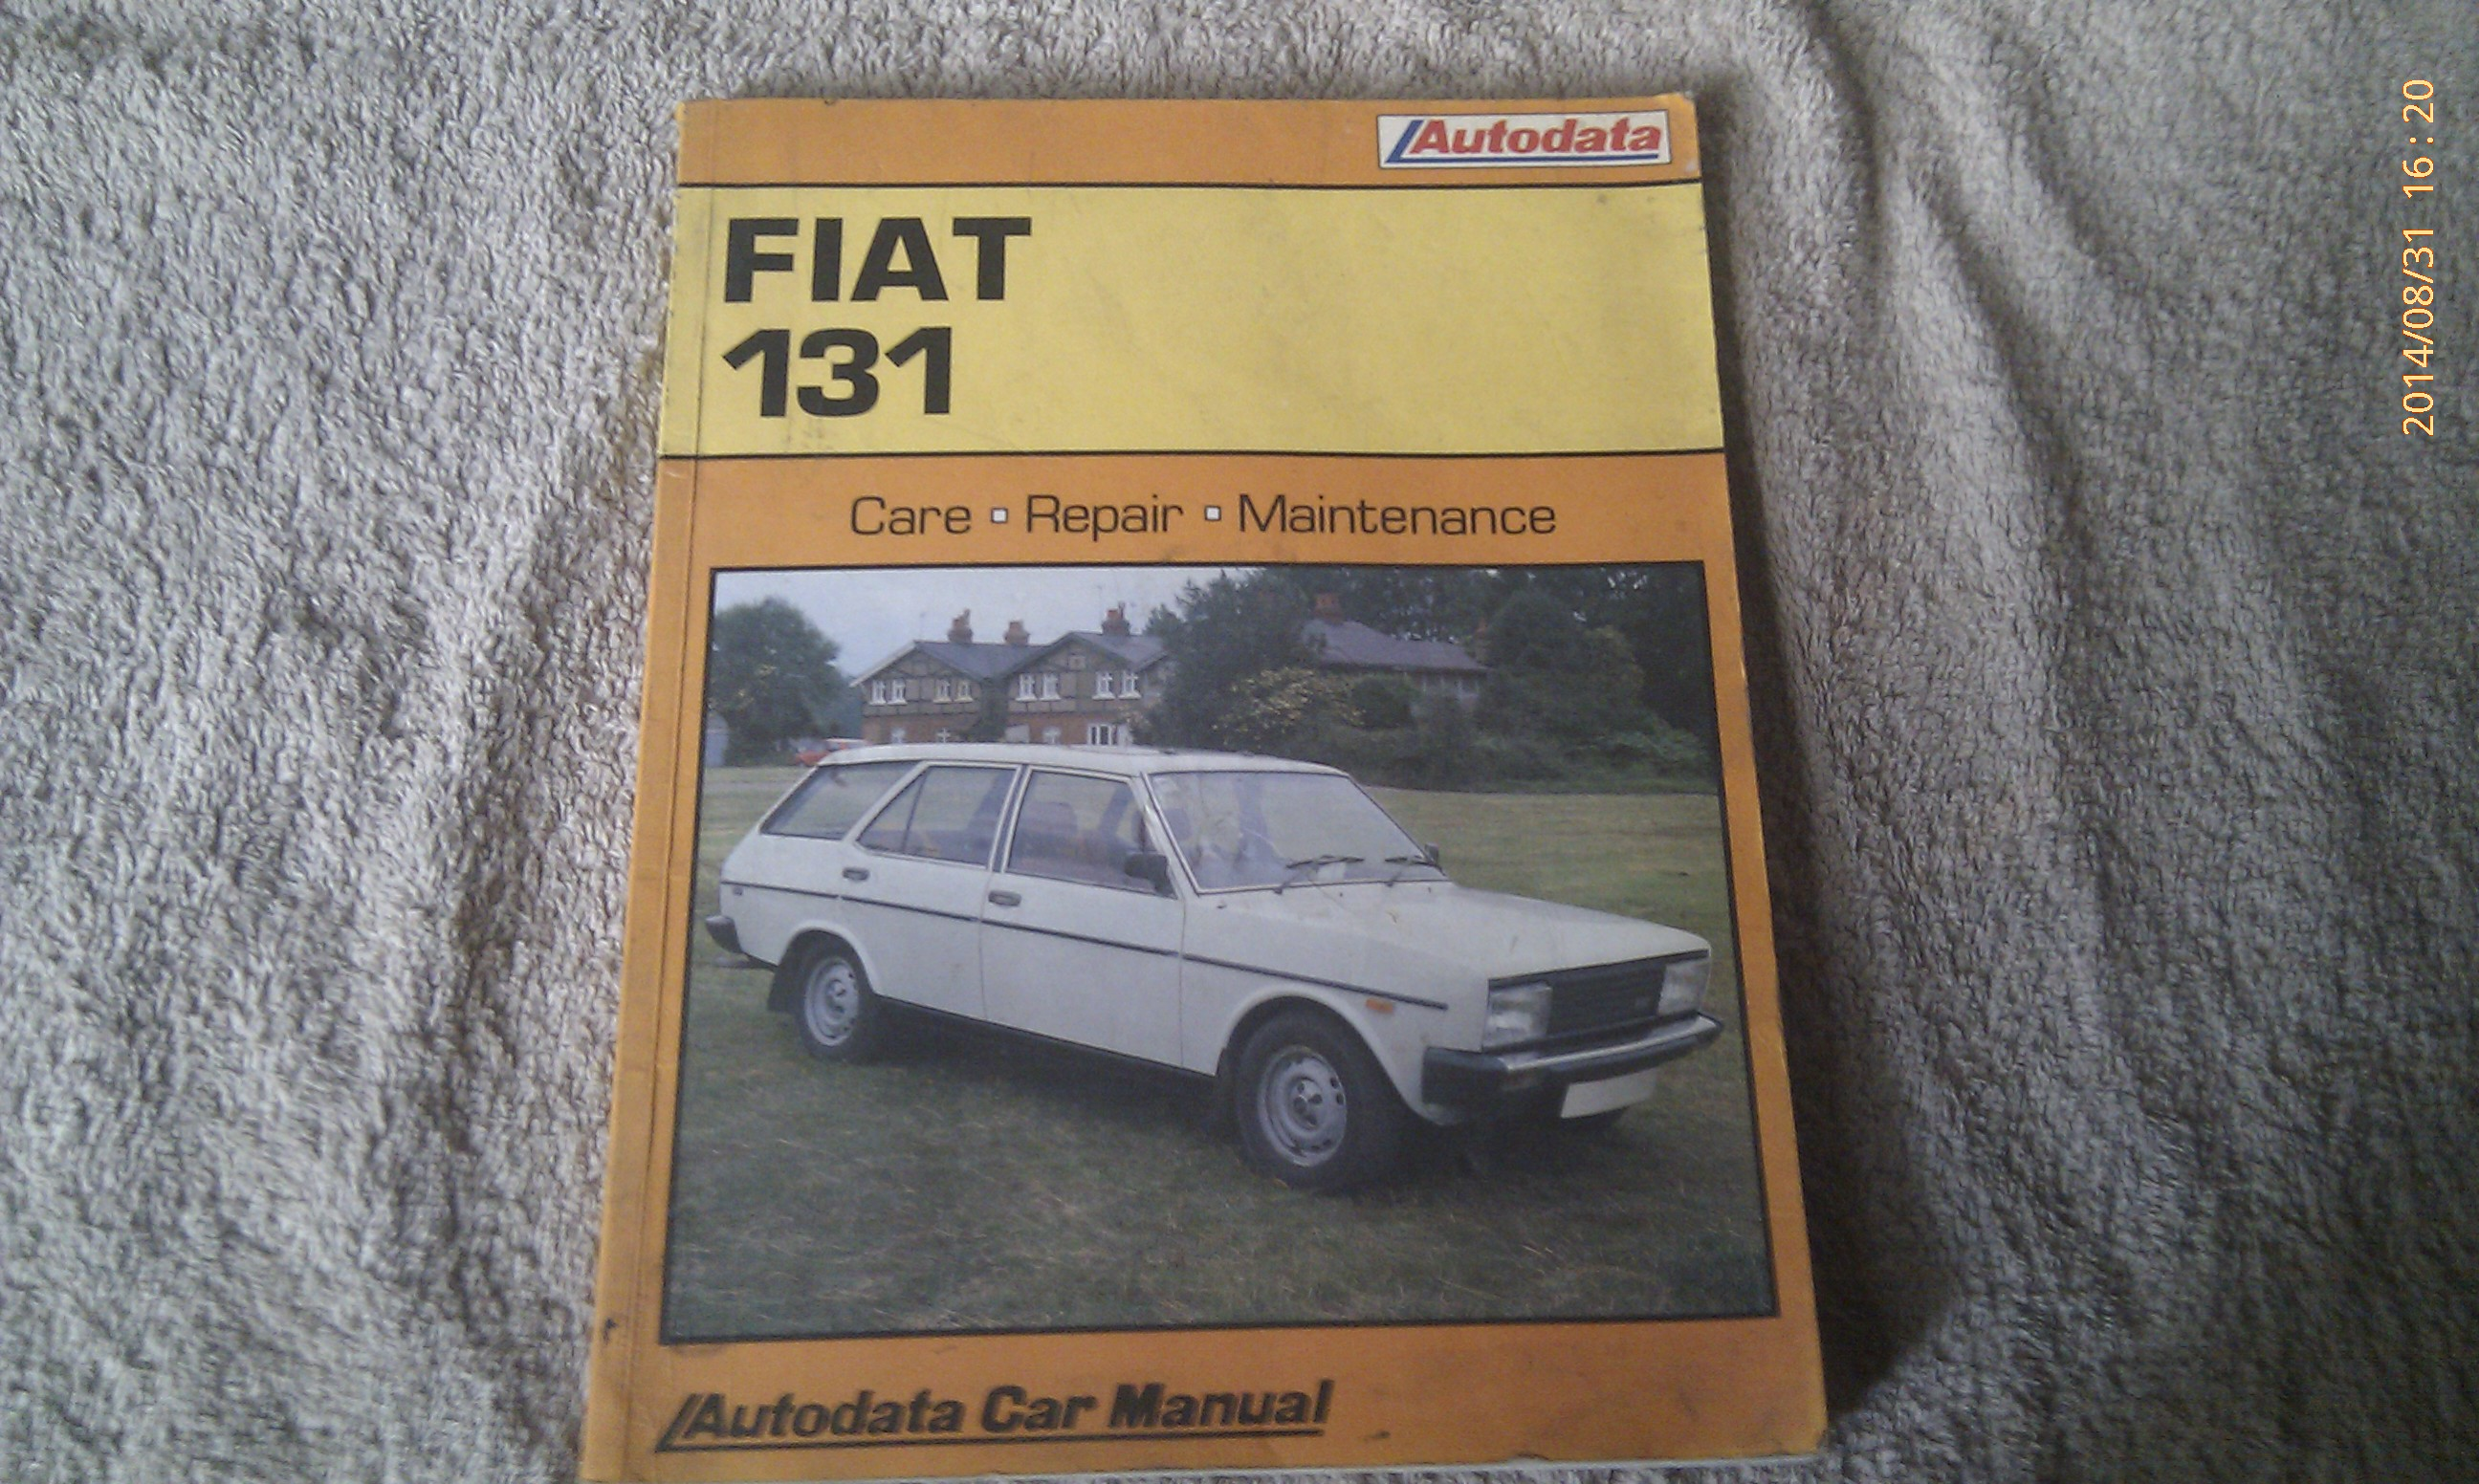 Fiat 131 1975/85 Workshop Manual - Curios and Wonders